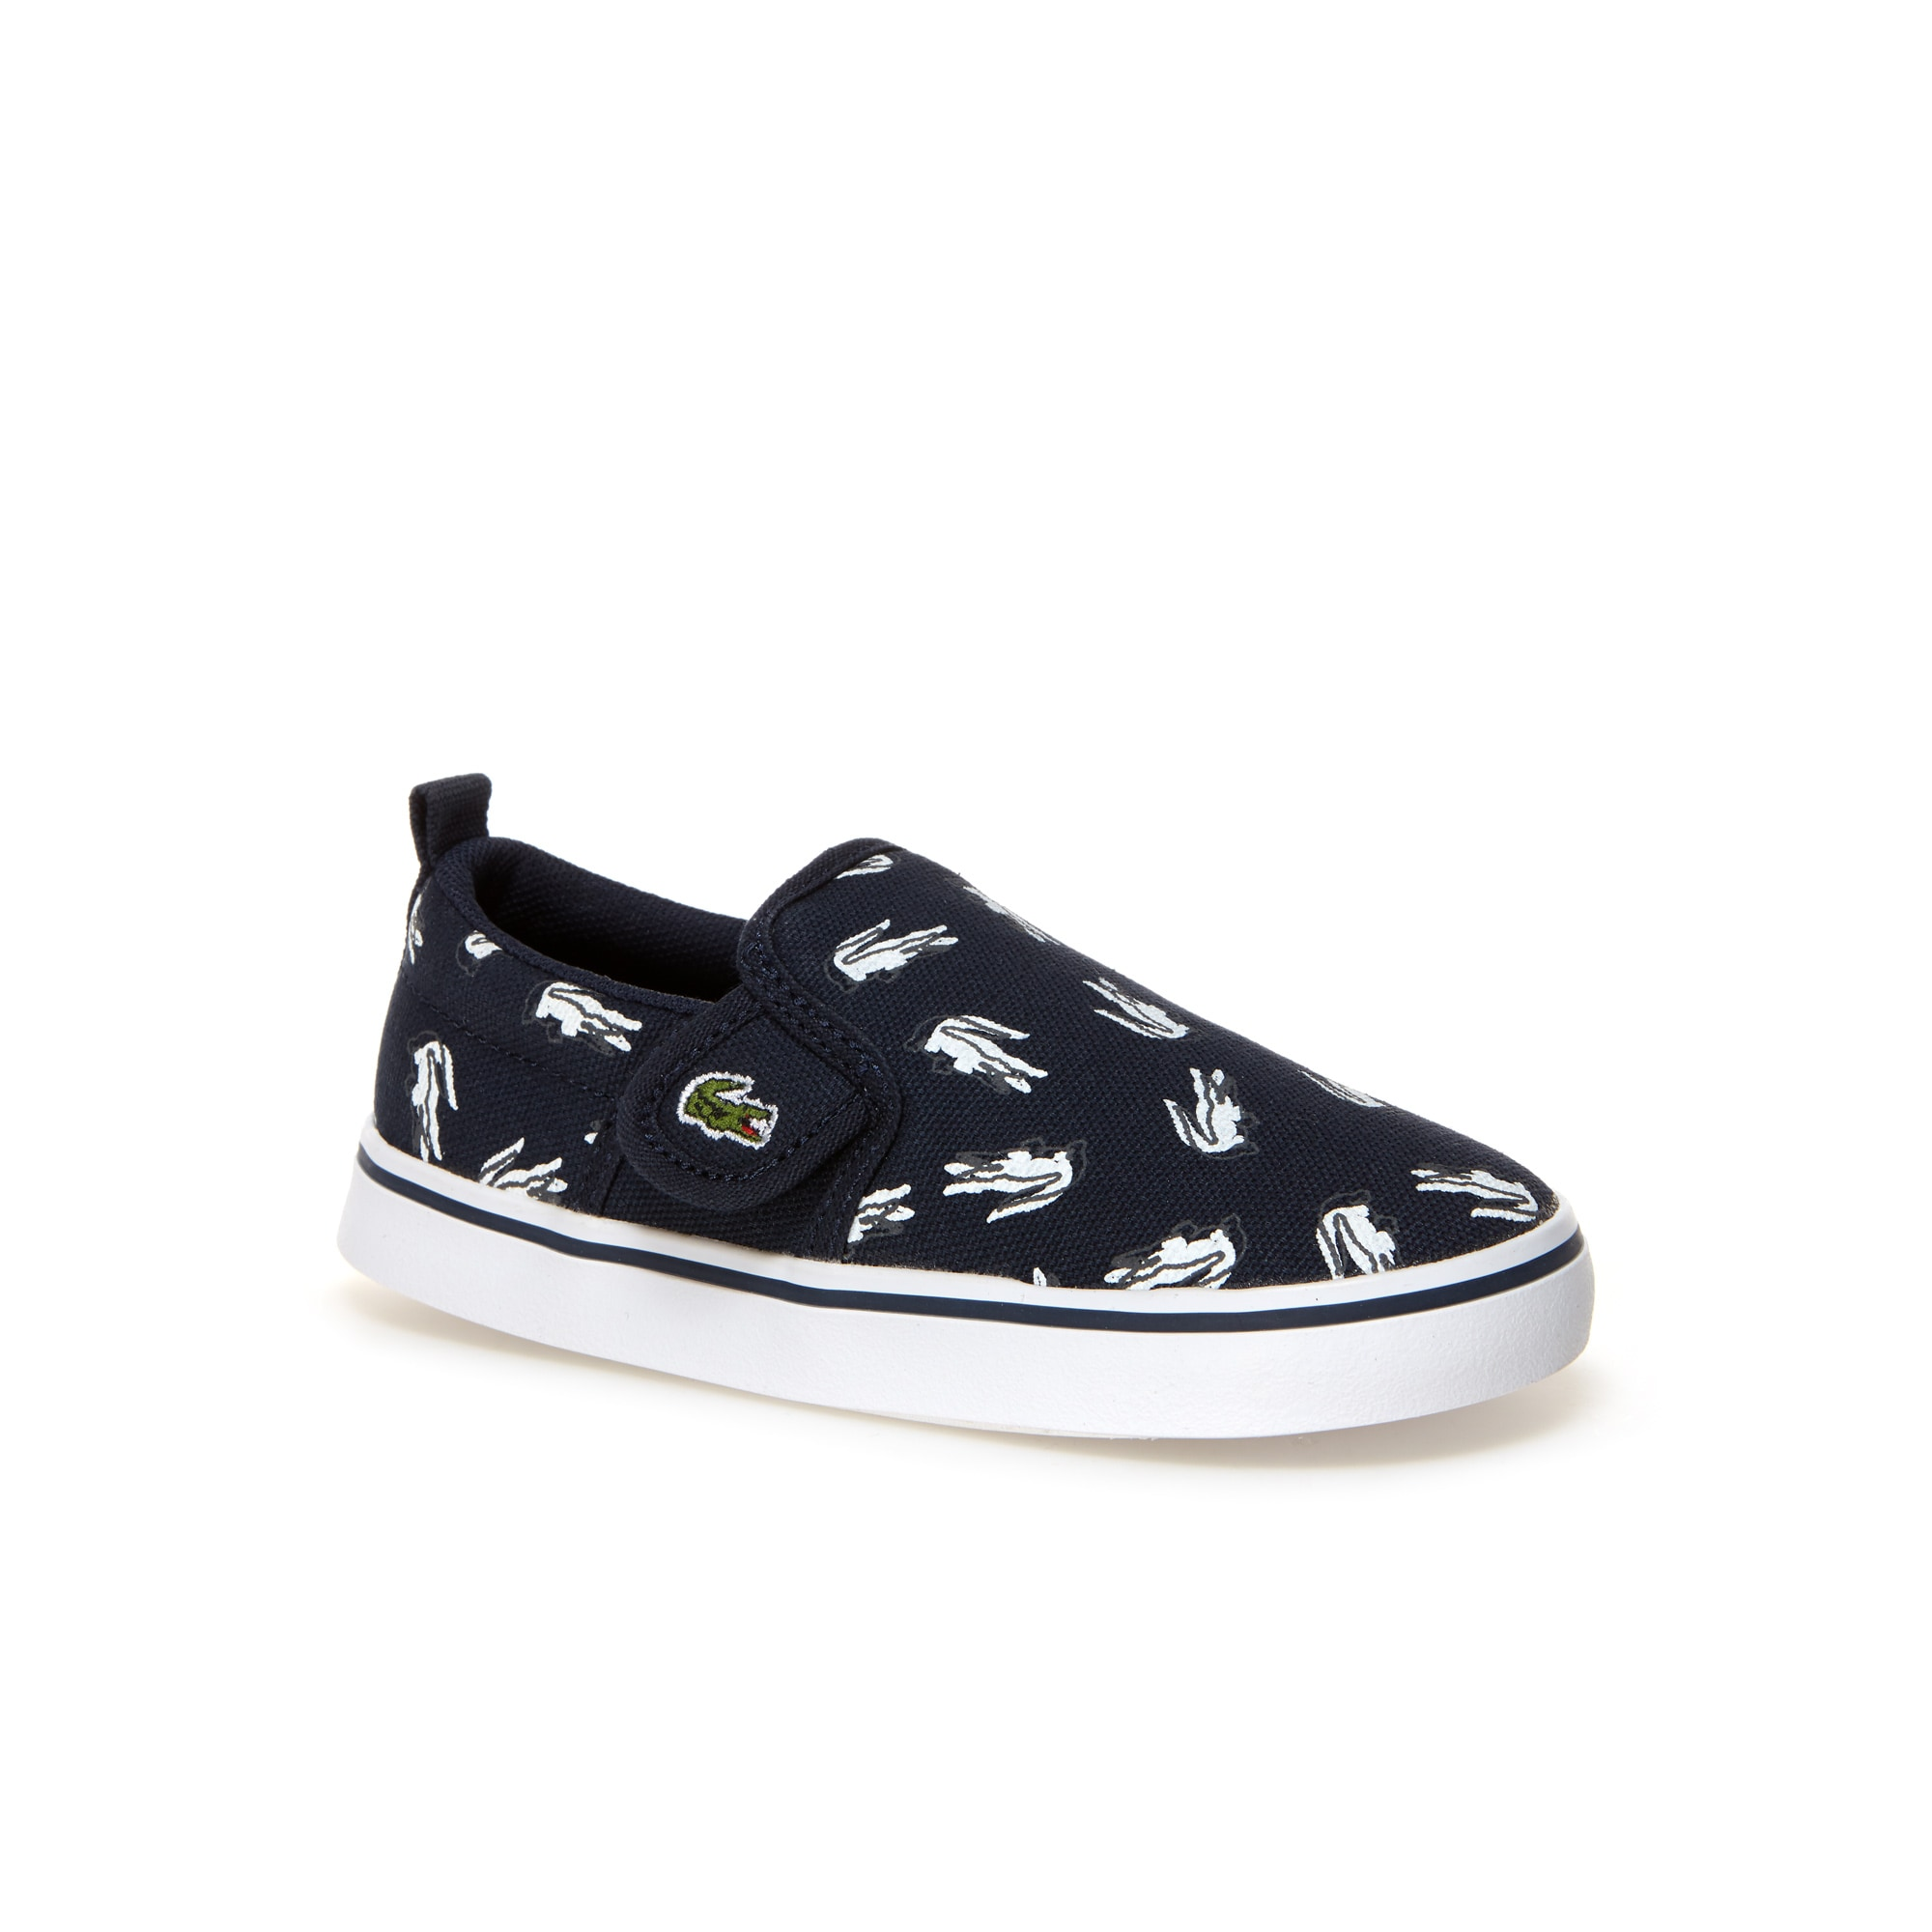 Infants' Gazon Canvas Slip-ons